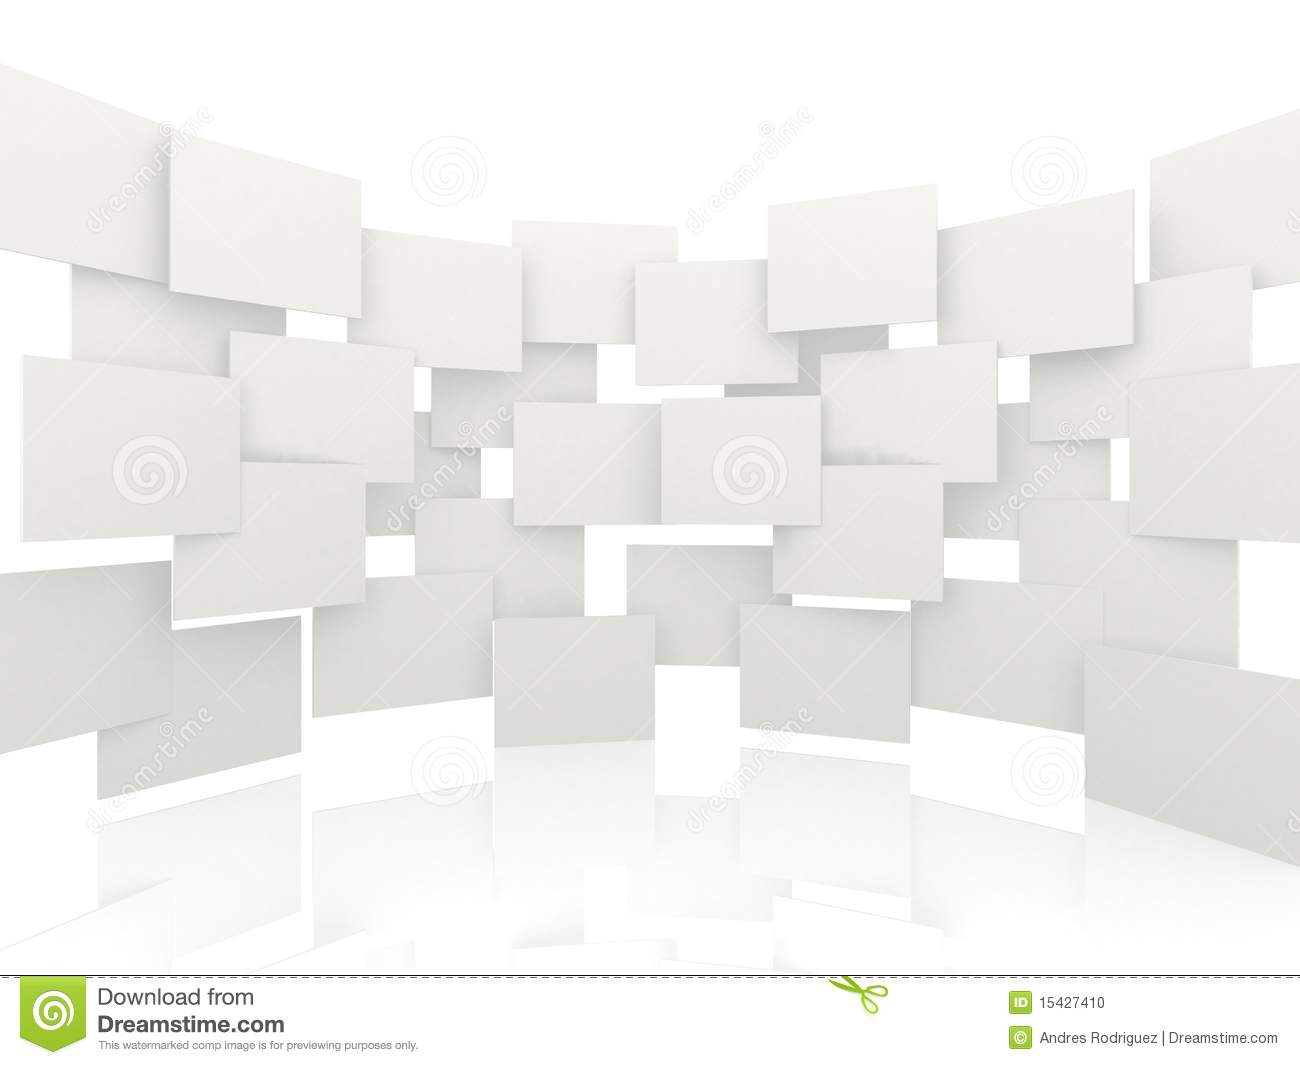 3d White Rectangles Background Stock Photo - Image: 15427410: www.dreamstime.com/stock-photo-3d-white-rectangles-background...